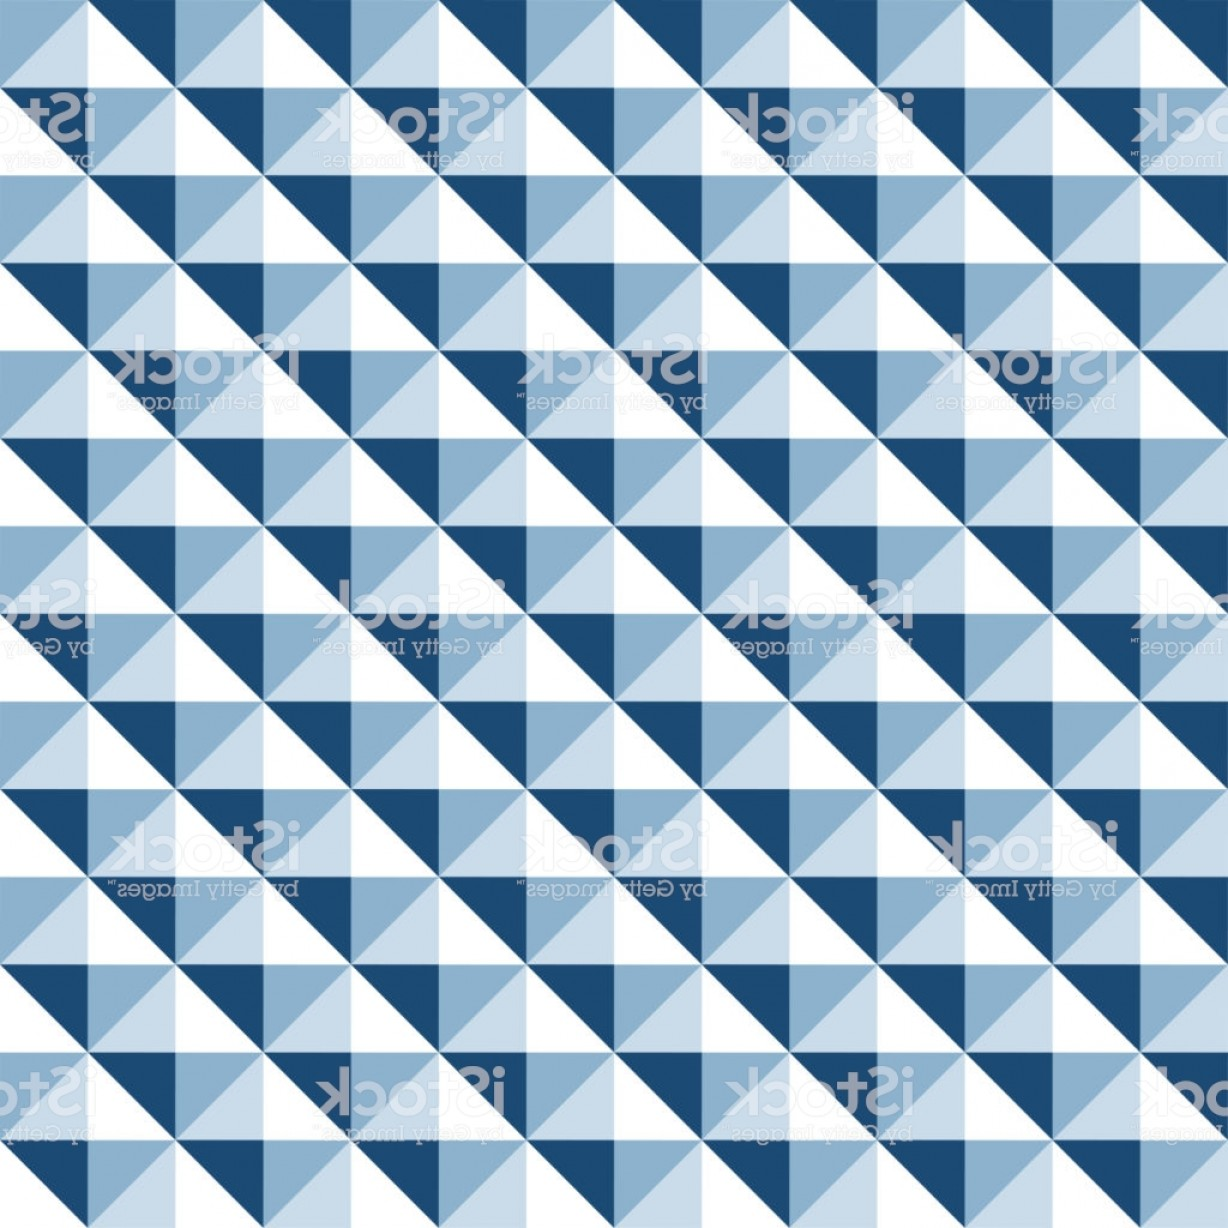 Pyramid Stud Vector: Seamless Geometric Stud Pattern Background In Tones Of Blue Gm